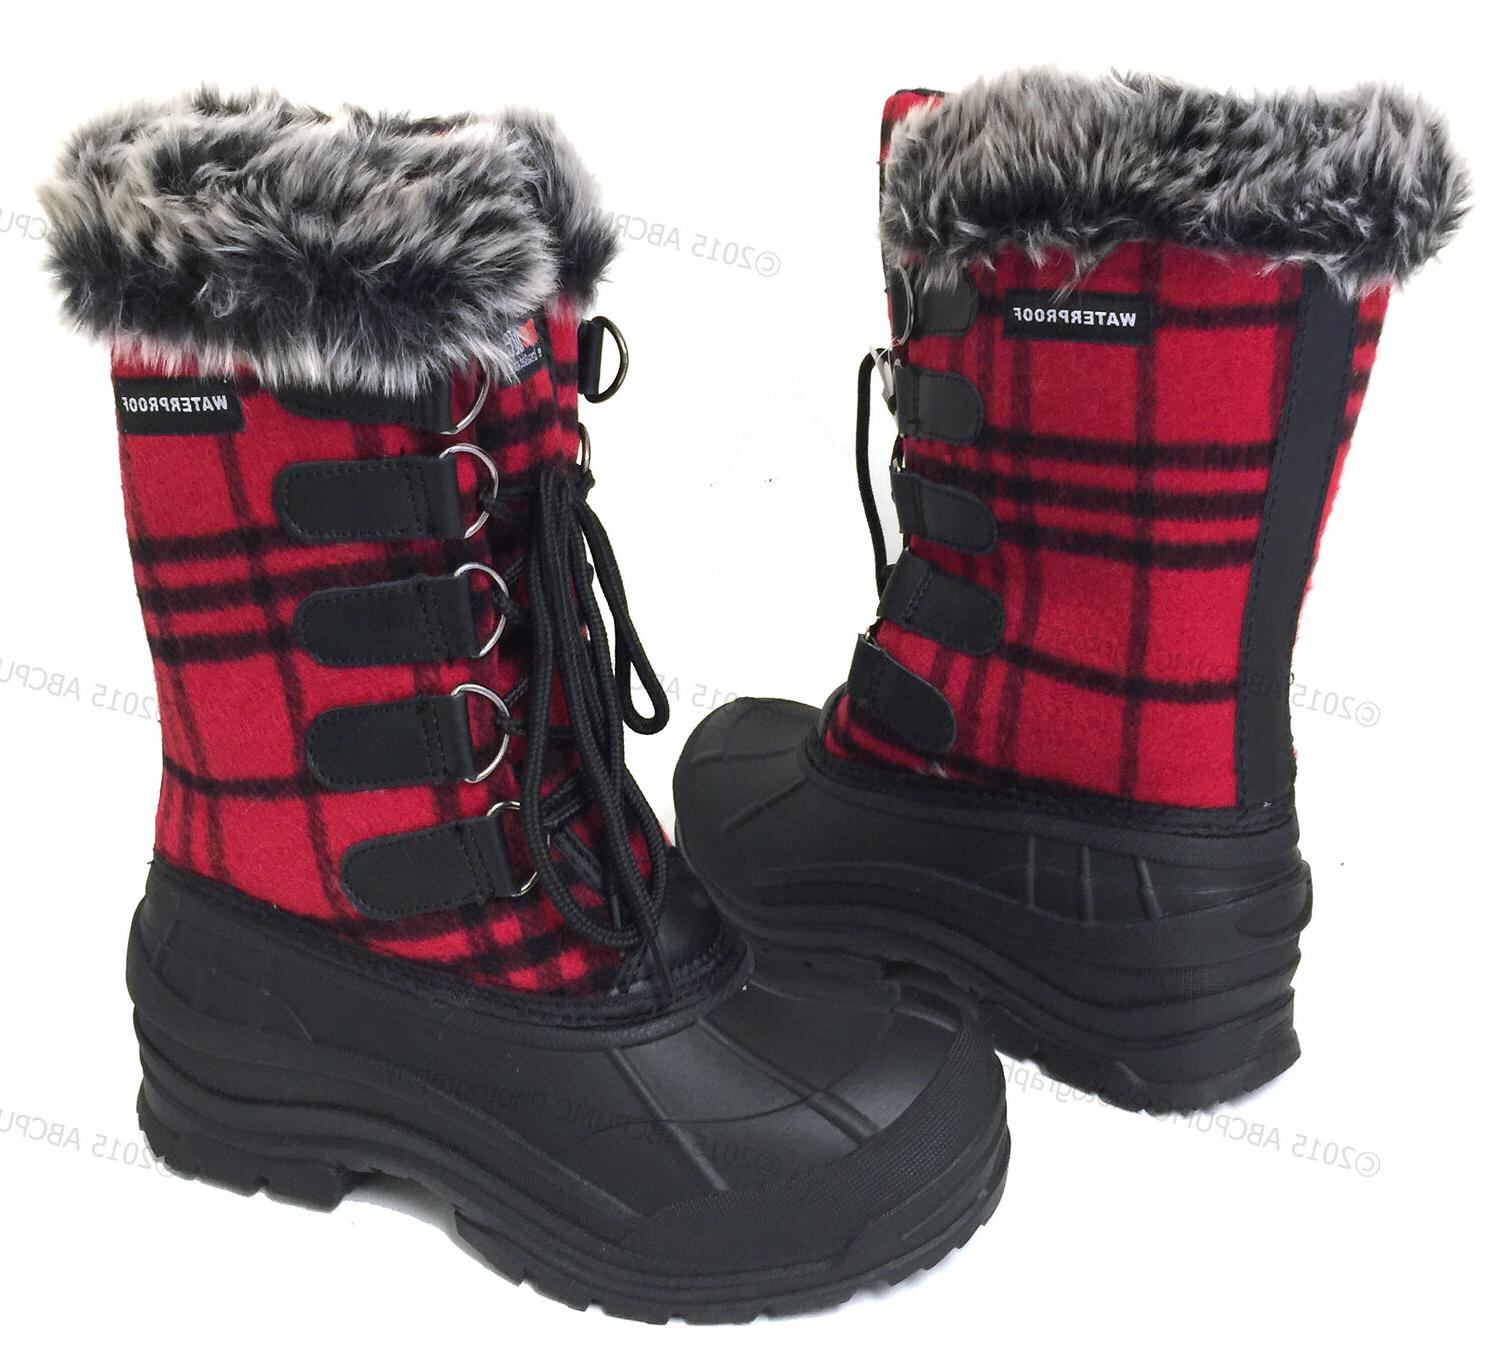 New Women's Flannel Plaid Fur Insulated Waterproof Hiking